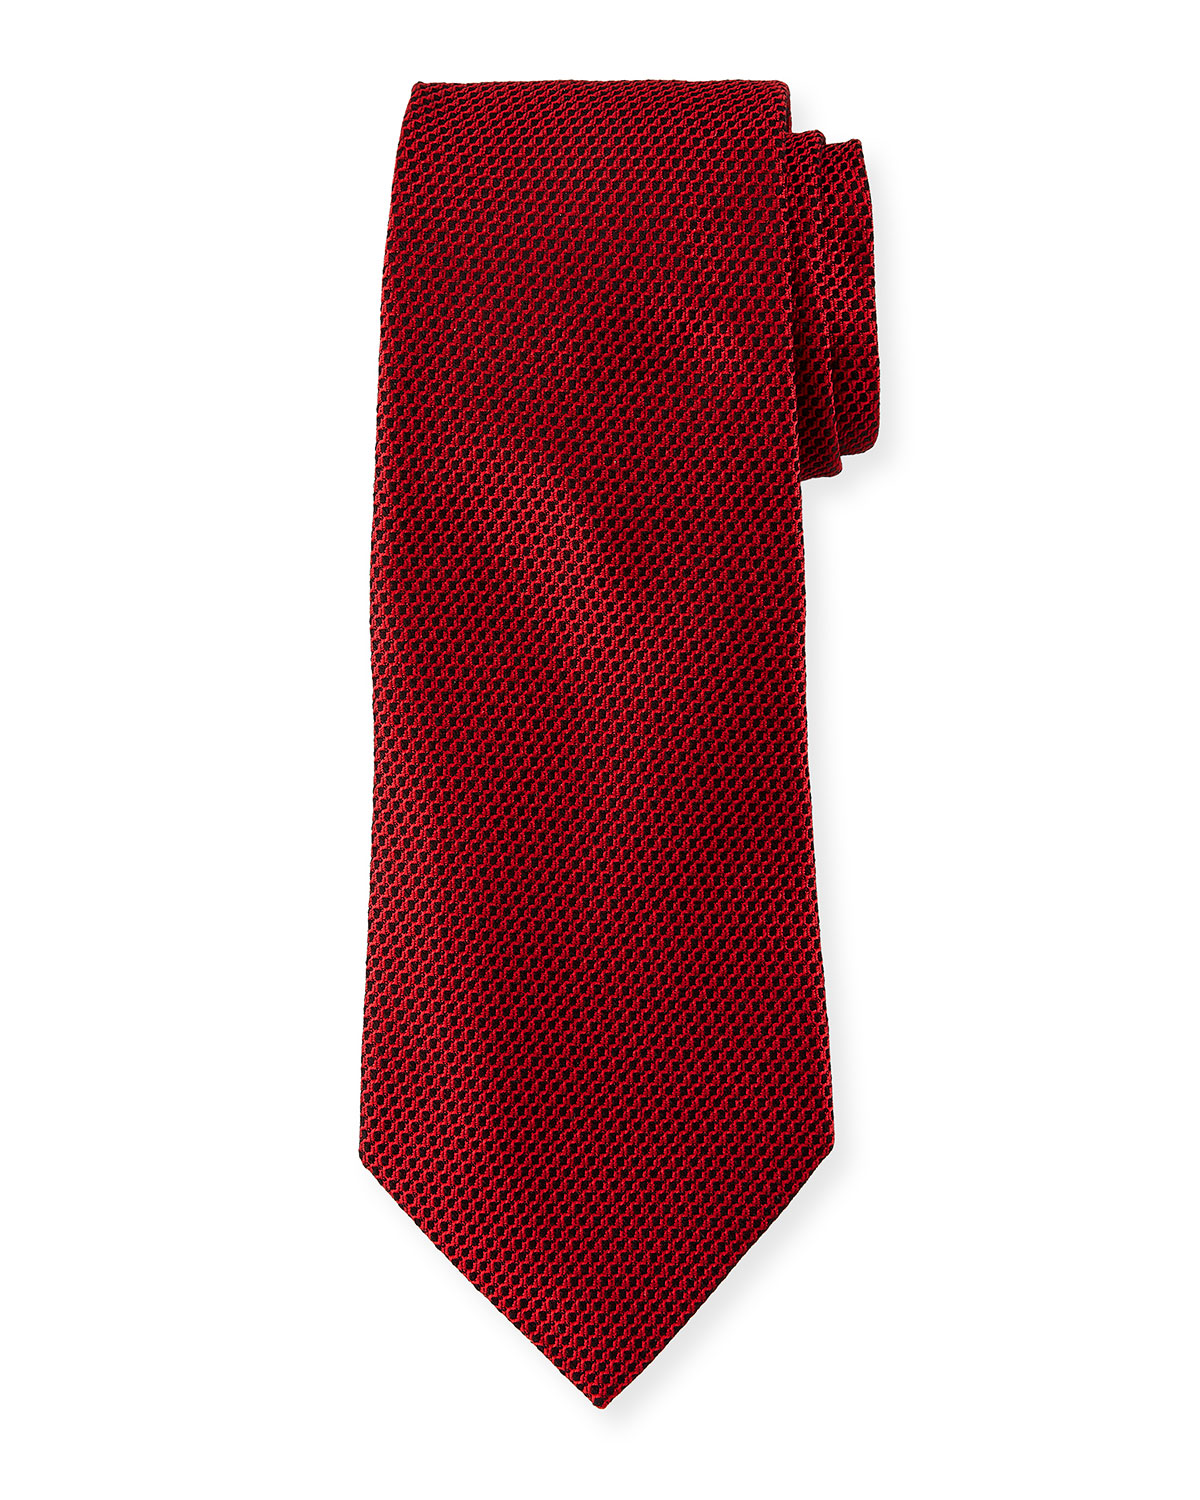 Ermenegildo Zegna Men's Chain-Link Silk Tie, Red